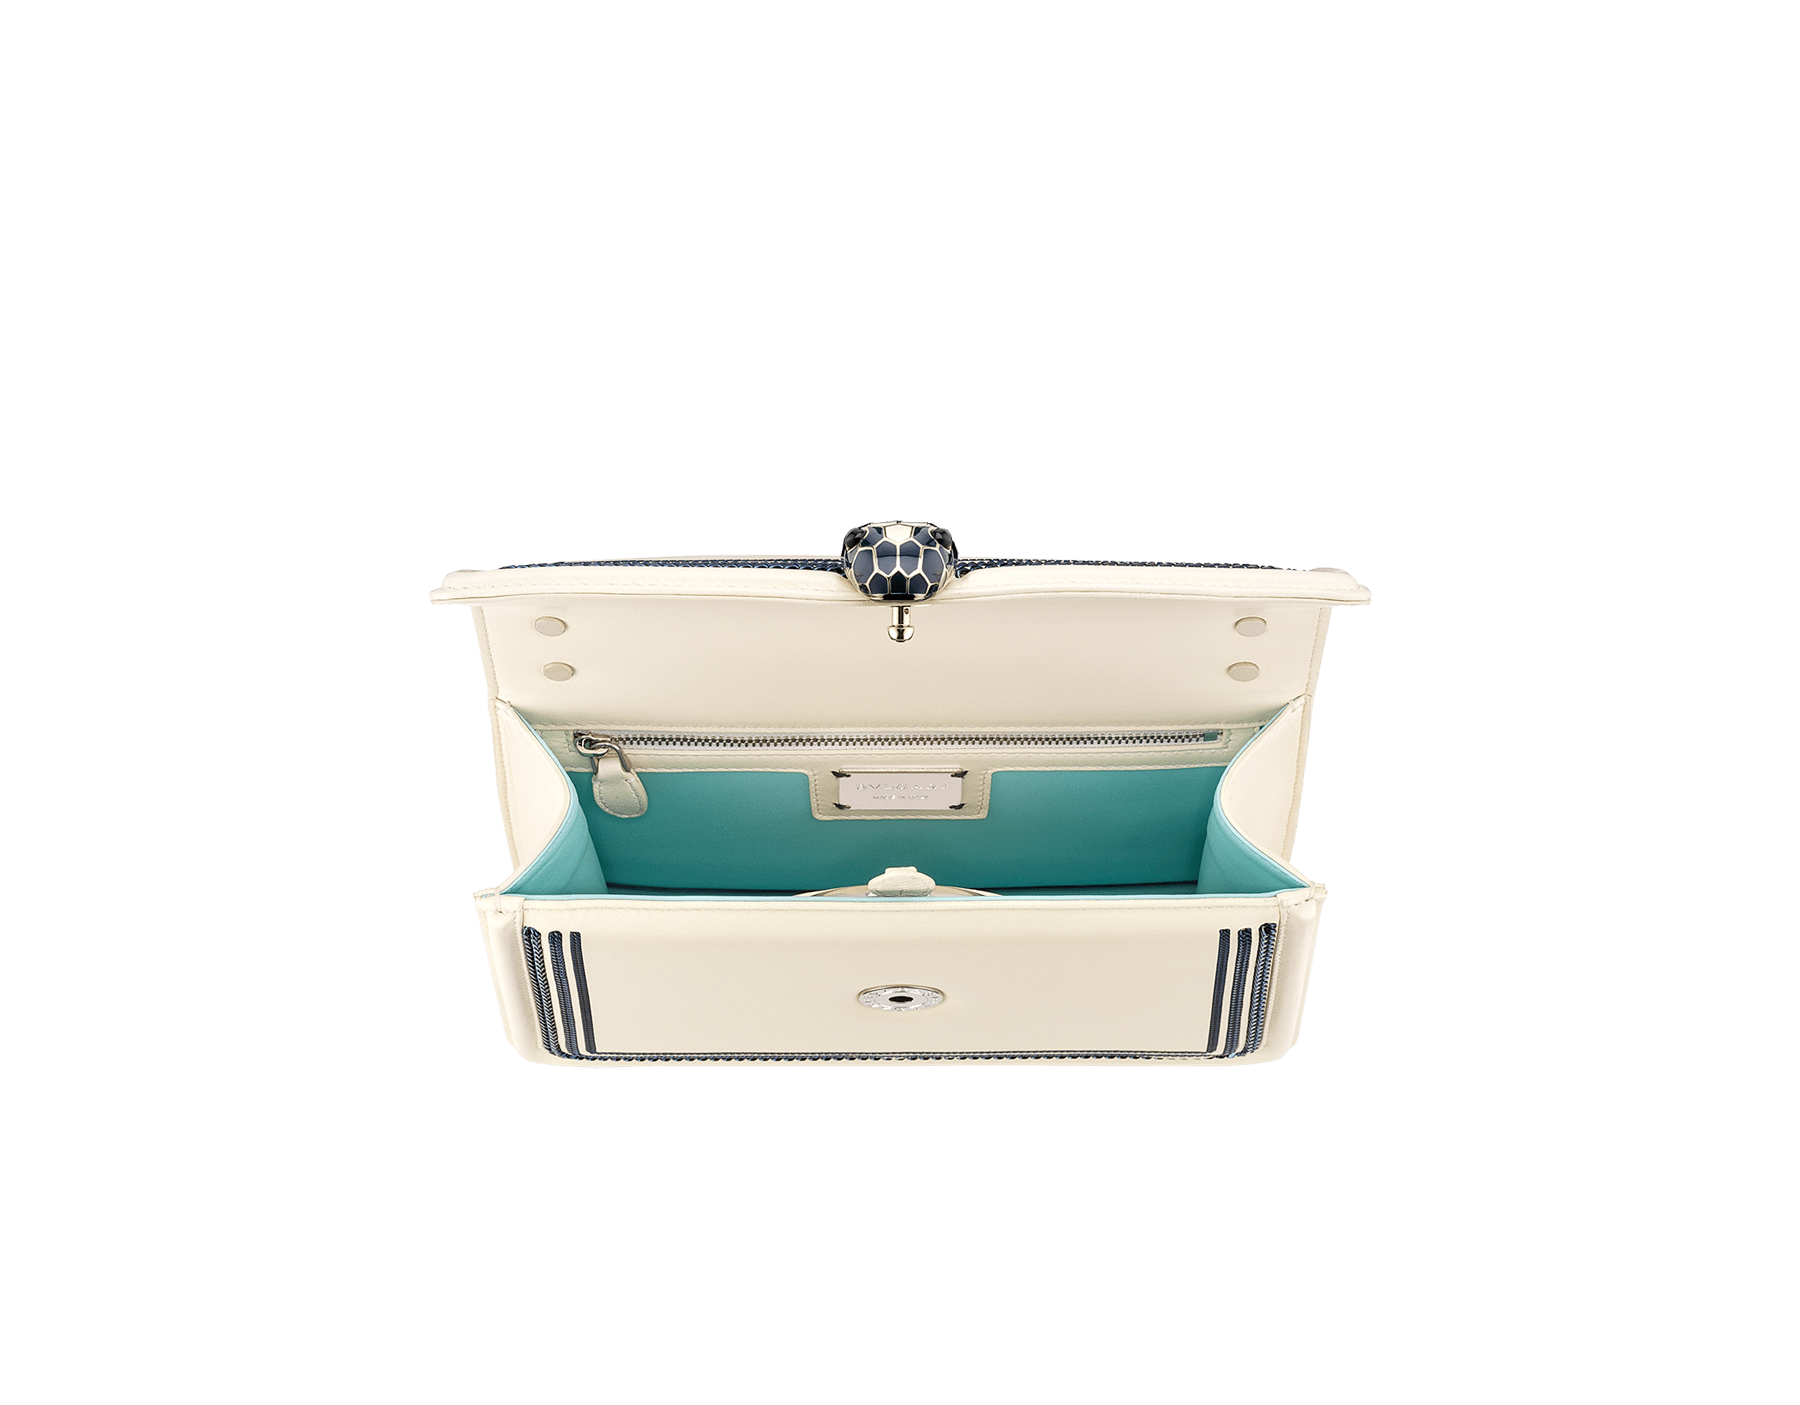 """""""Serpenti Diamond Blast"""" shoulder bag in Ivory Opal white smooth calf leather, featuring a Teal Topaz green 3-Maxi Chain motif, and an Aquamarine light blue nappa leather internal lining. Tempting snakehead closure in palladium-plated brass, embellished with Teal Topaz green and Ivory Opal white enamel, and black onyx eyes. 291173 image 7"""